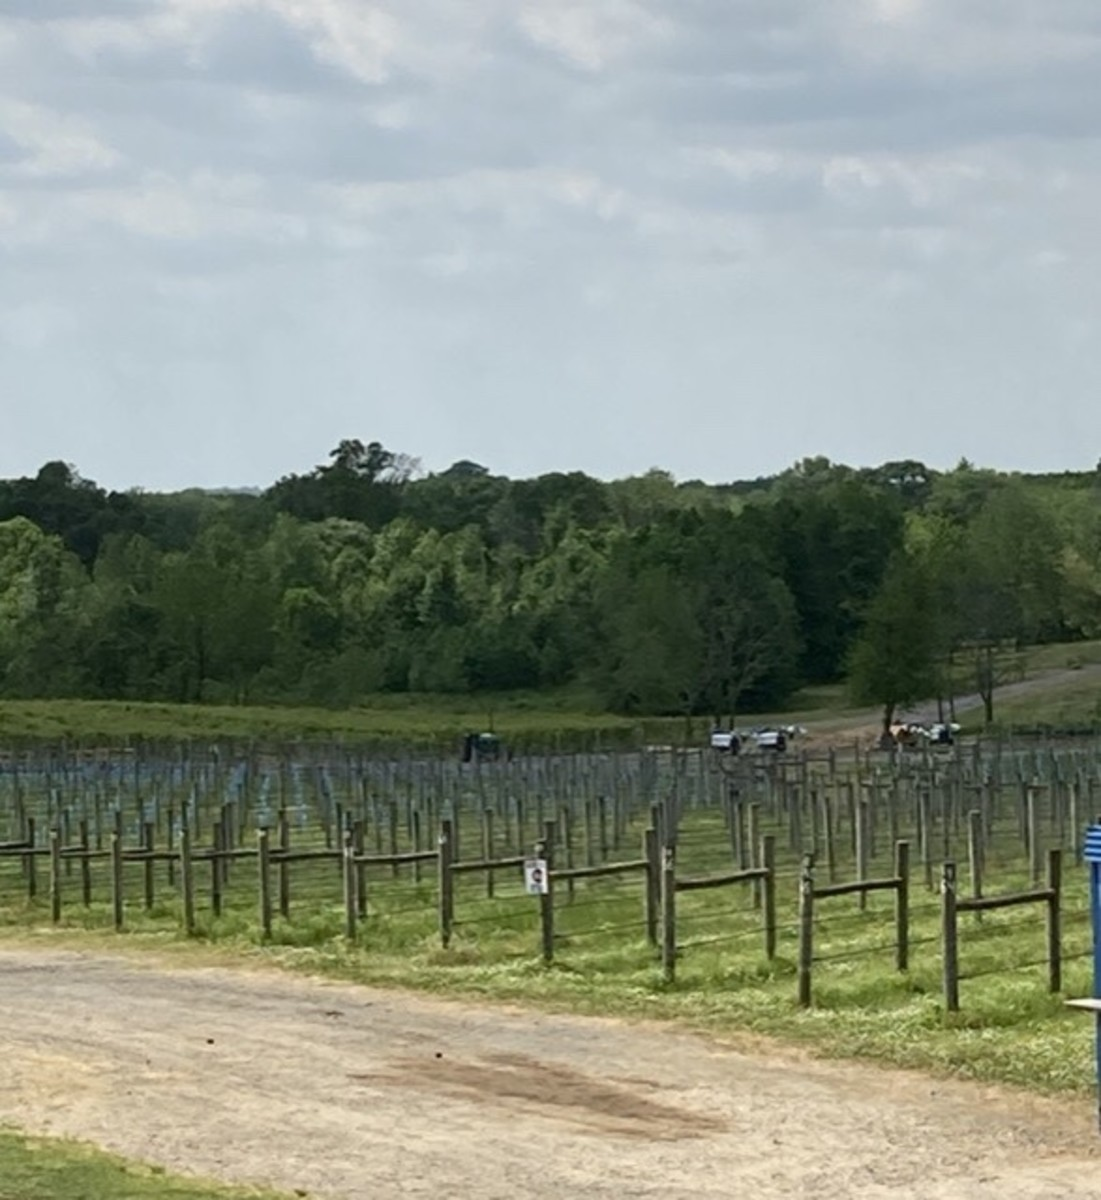 Scenes from Laurita Winery